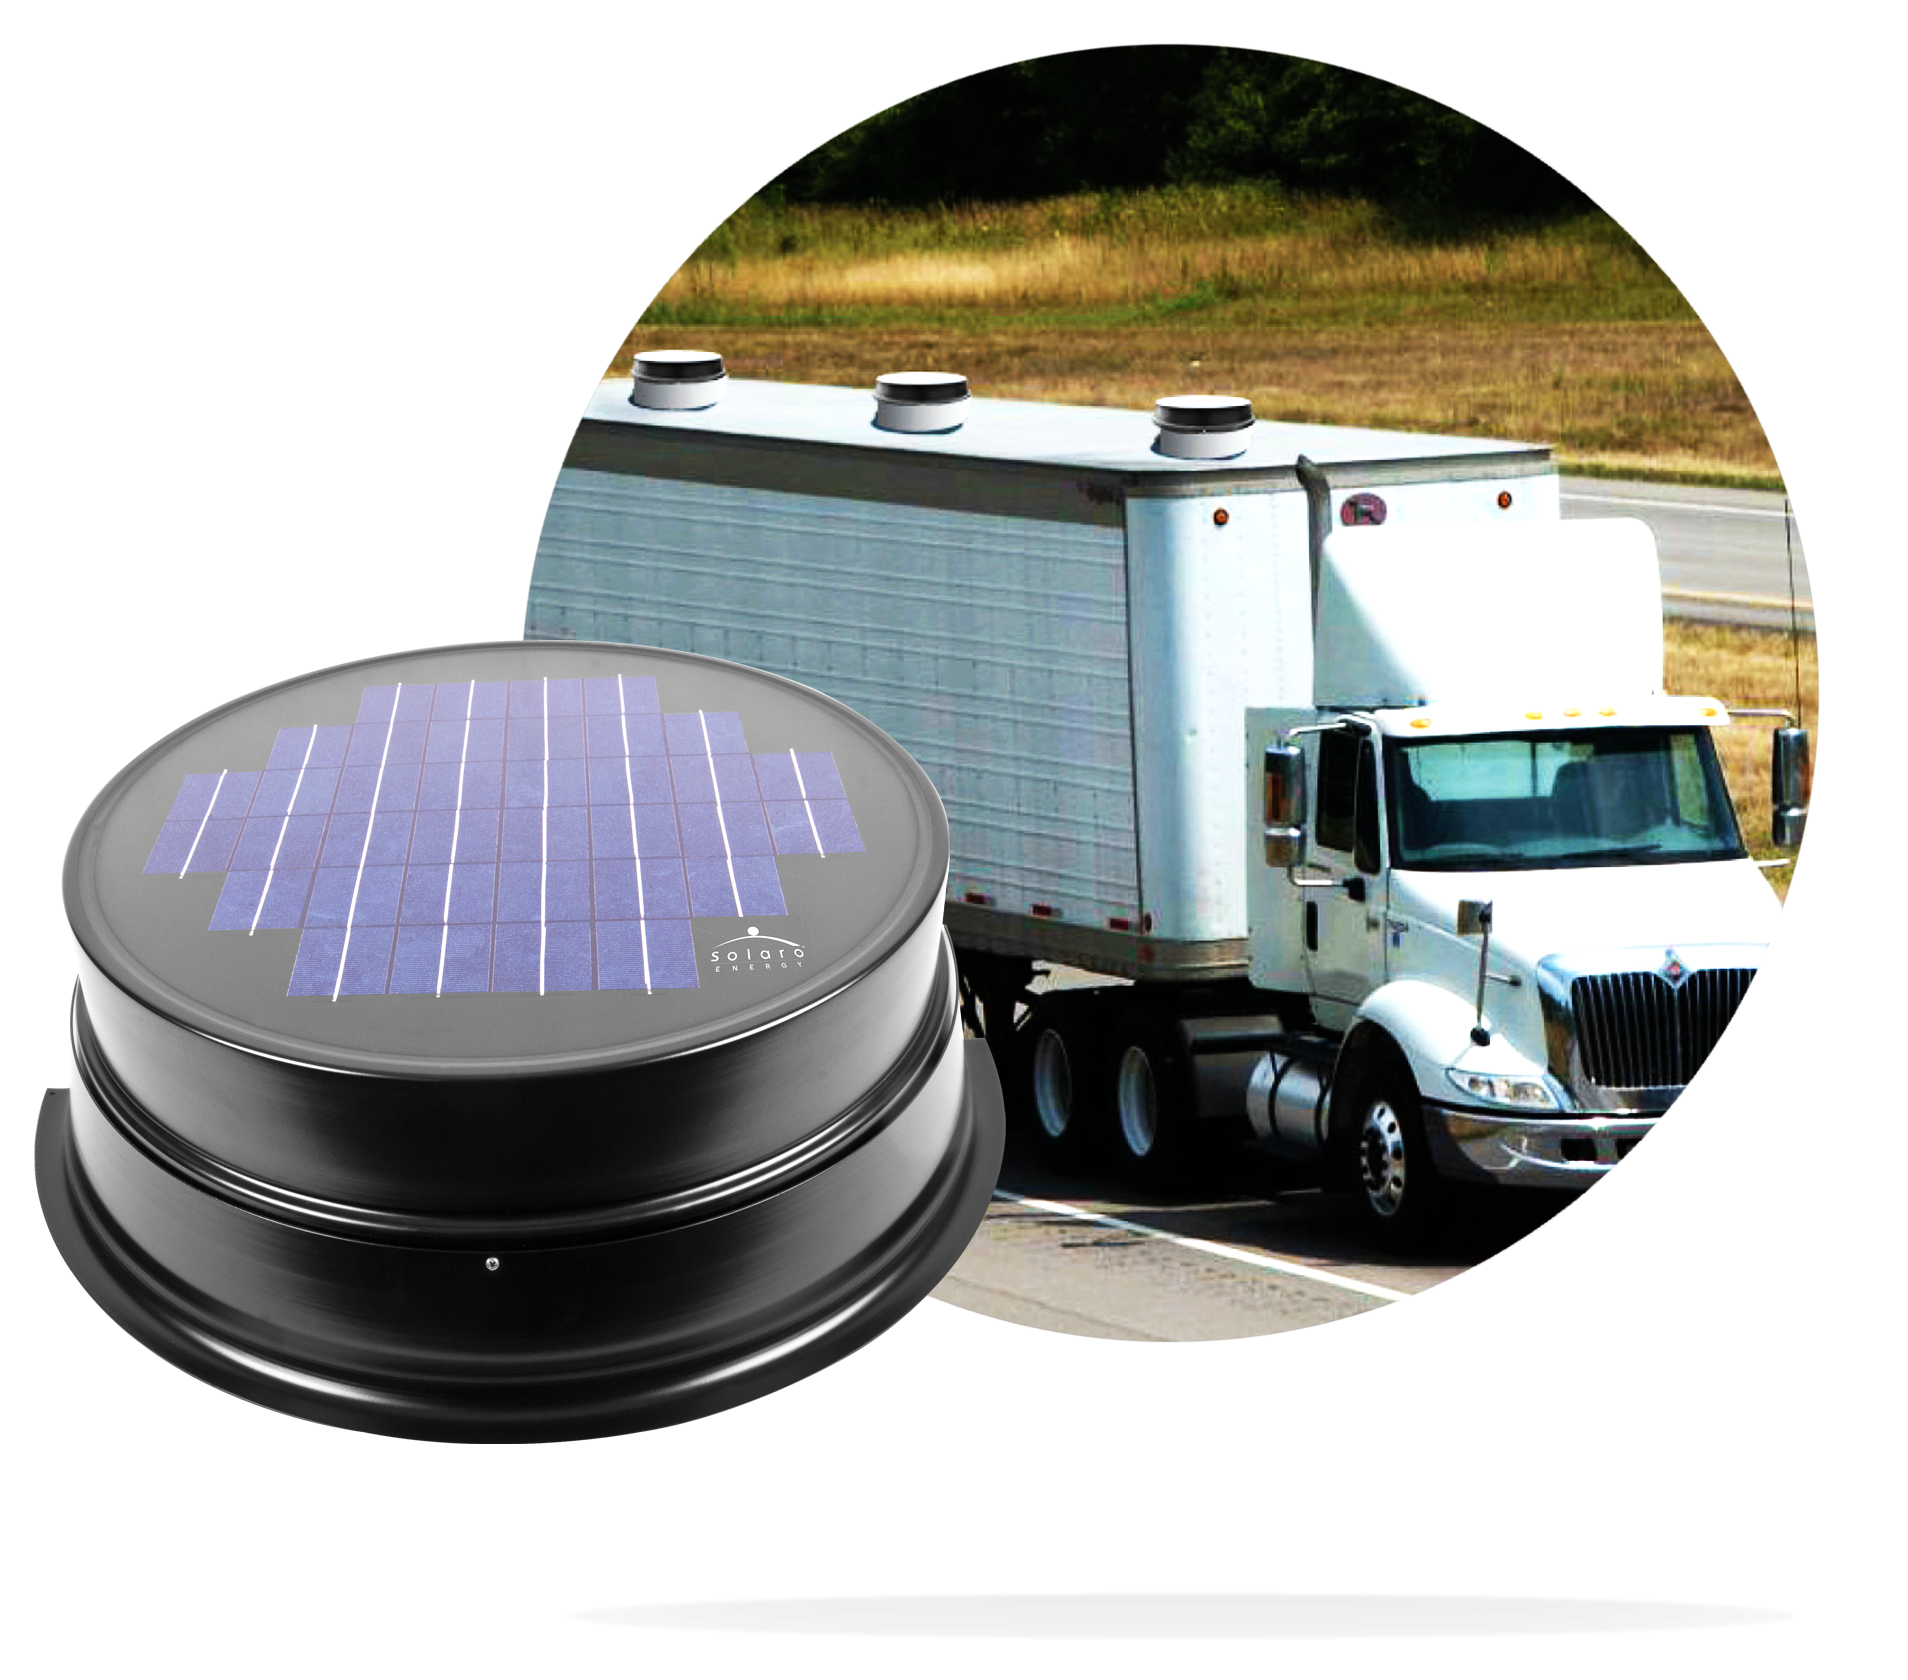 Regulate the temperature of trailers with the Delivery Truck Ventilation System.